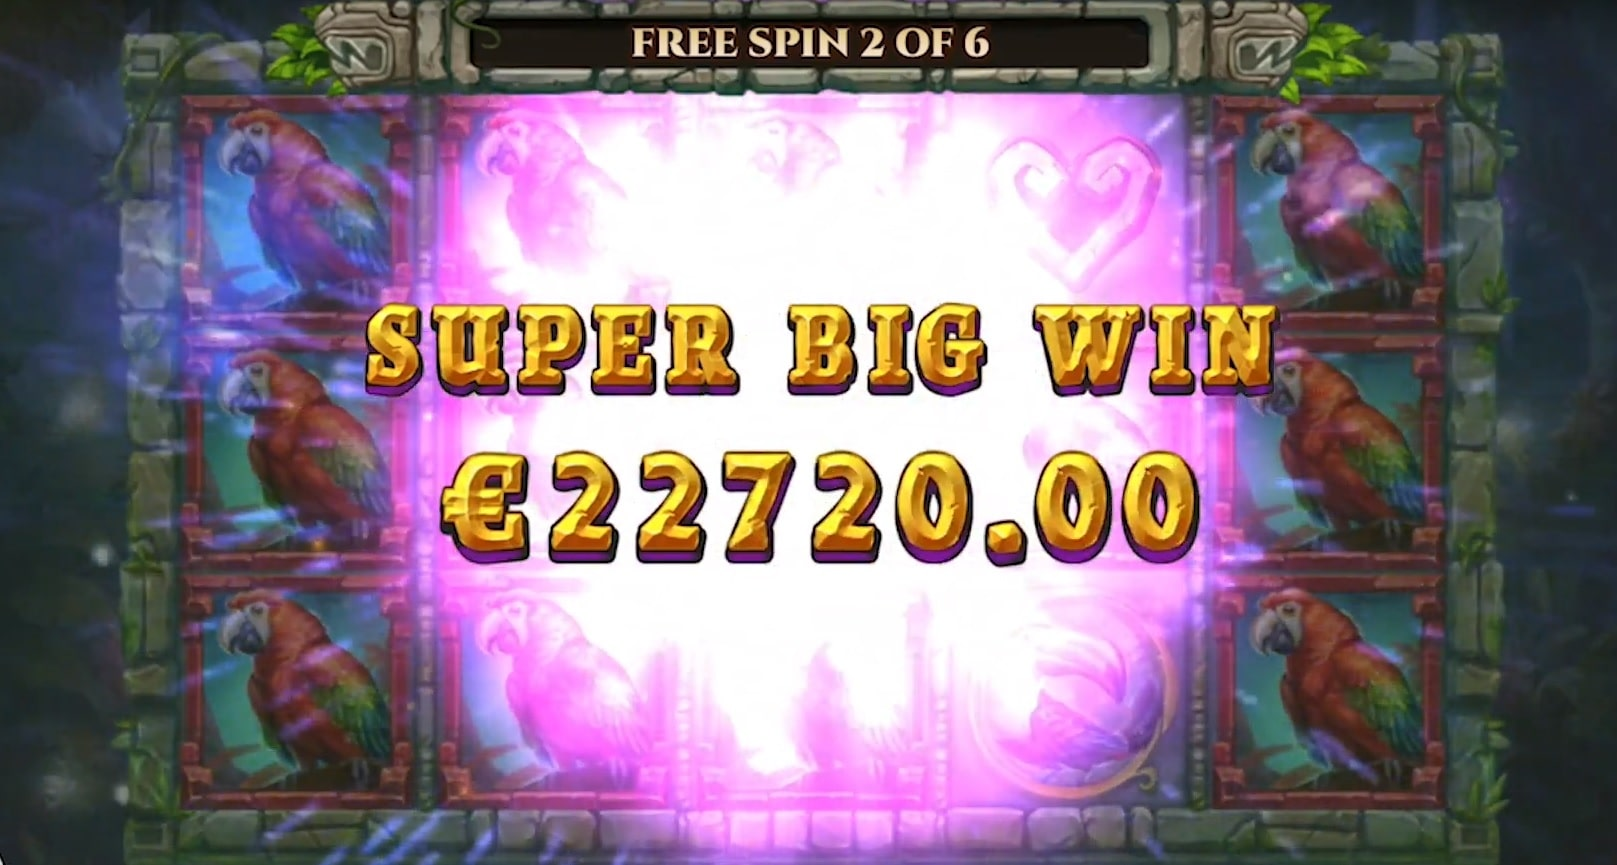 Super Big Win in the Rainforest Magic slot from Play'N Go.